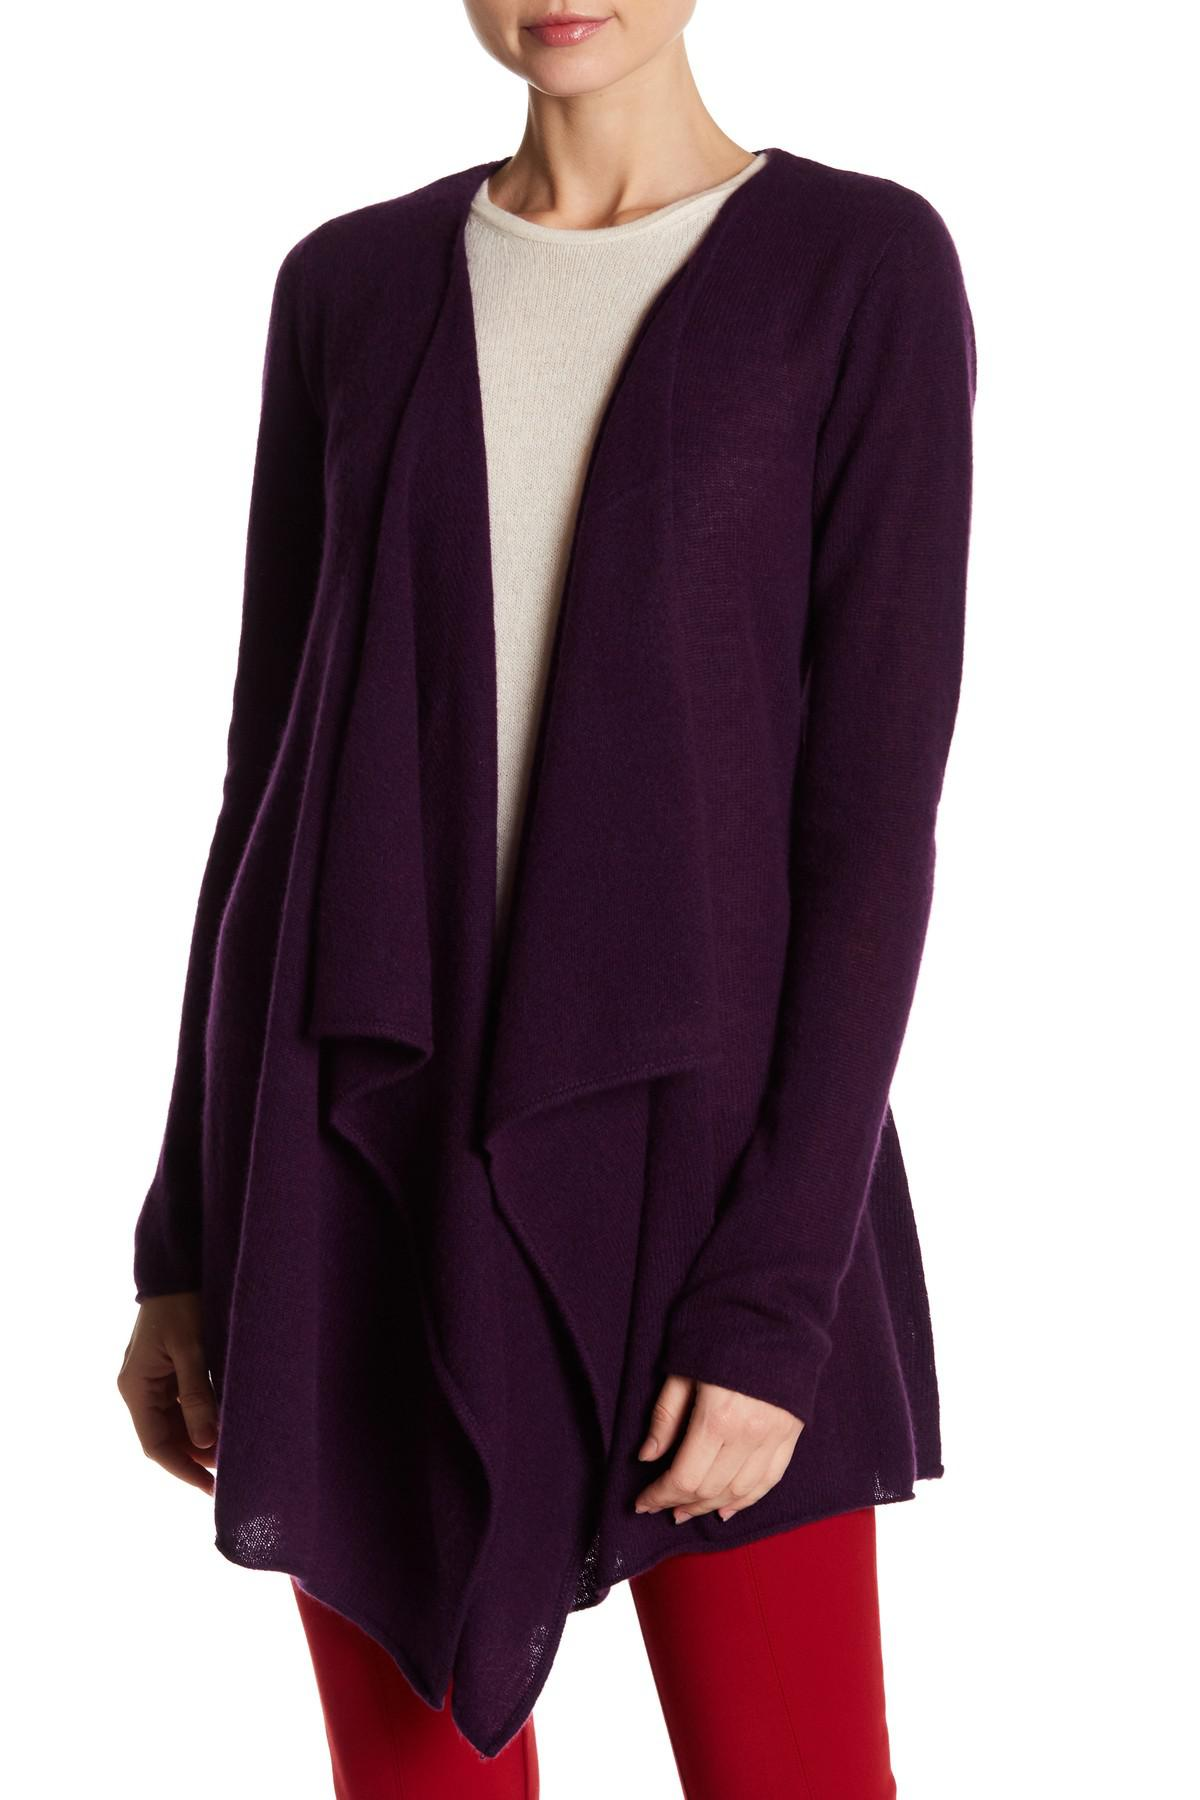 Philosophy cashmere Cashmere Waterfall Front Cardigan in Purple | Lyst